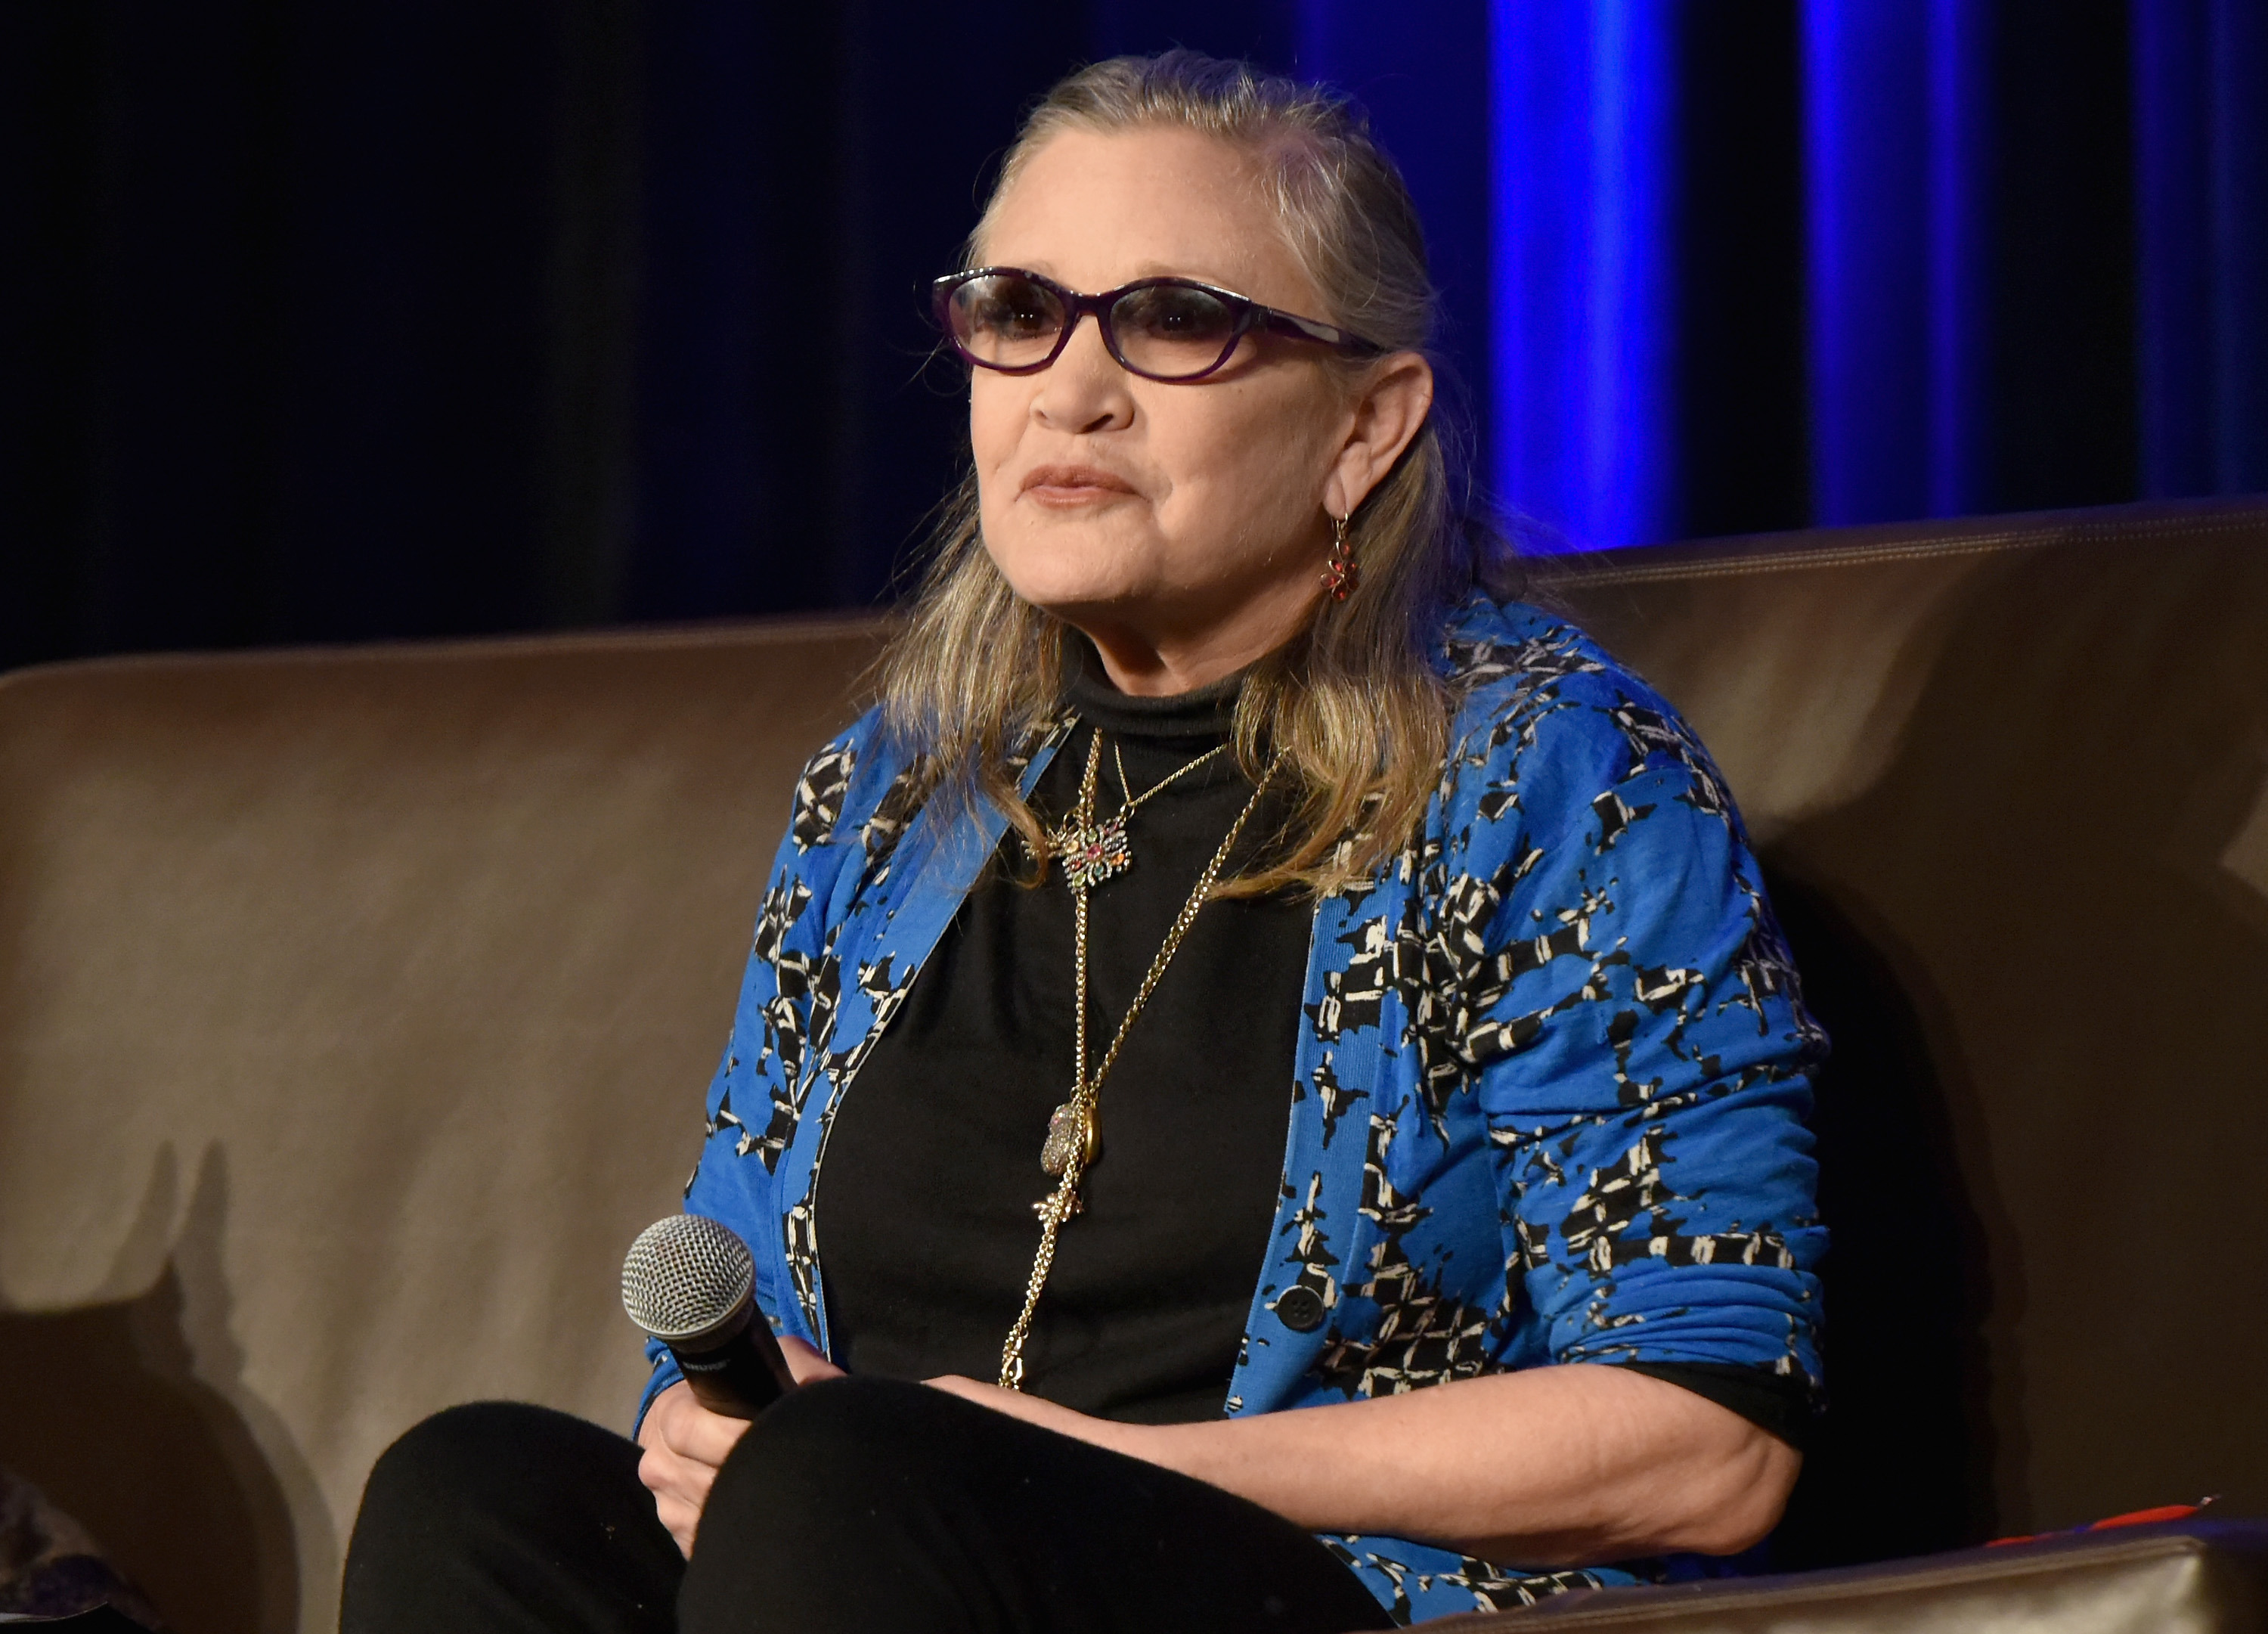 Actress Carrie Fisher died Tuesday after suffering a heart attack while on a flight from London to Los Angeles. (Getty Images)